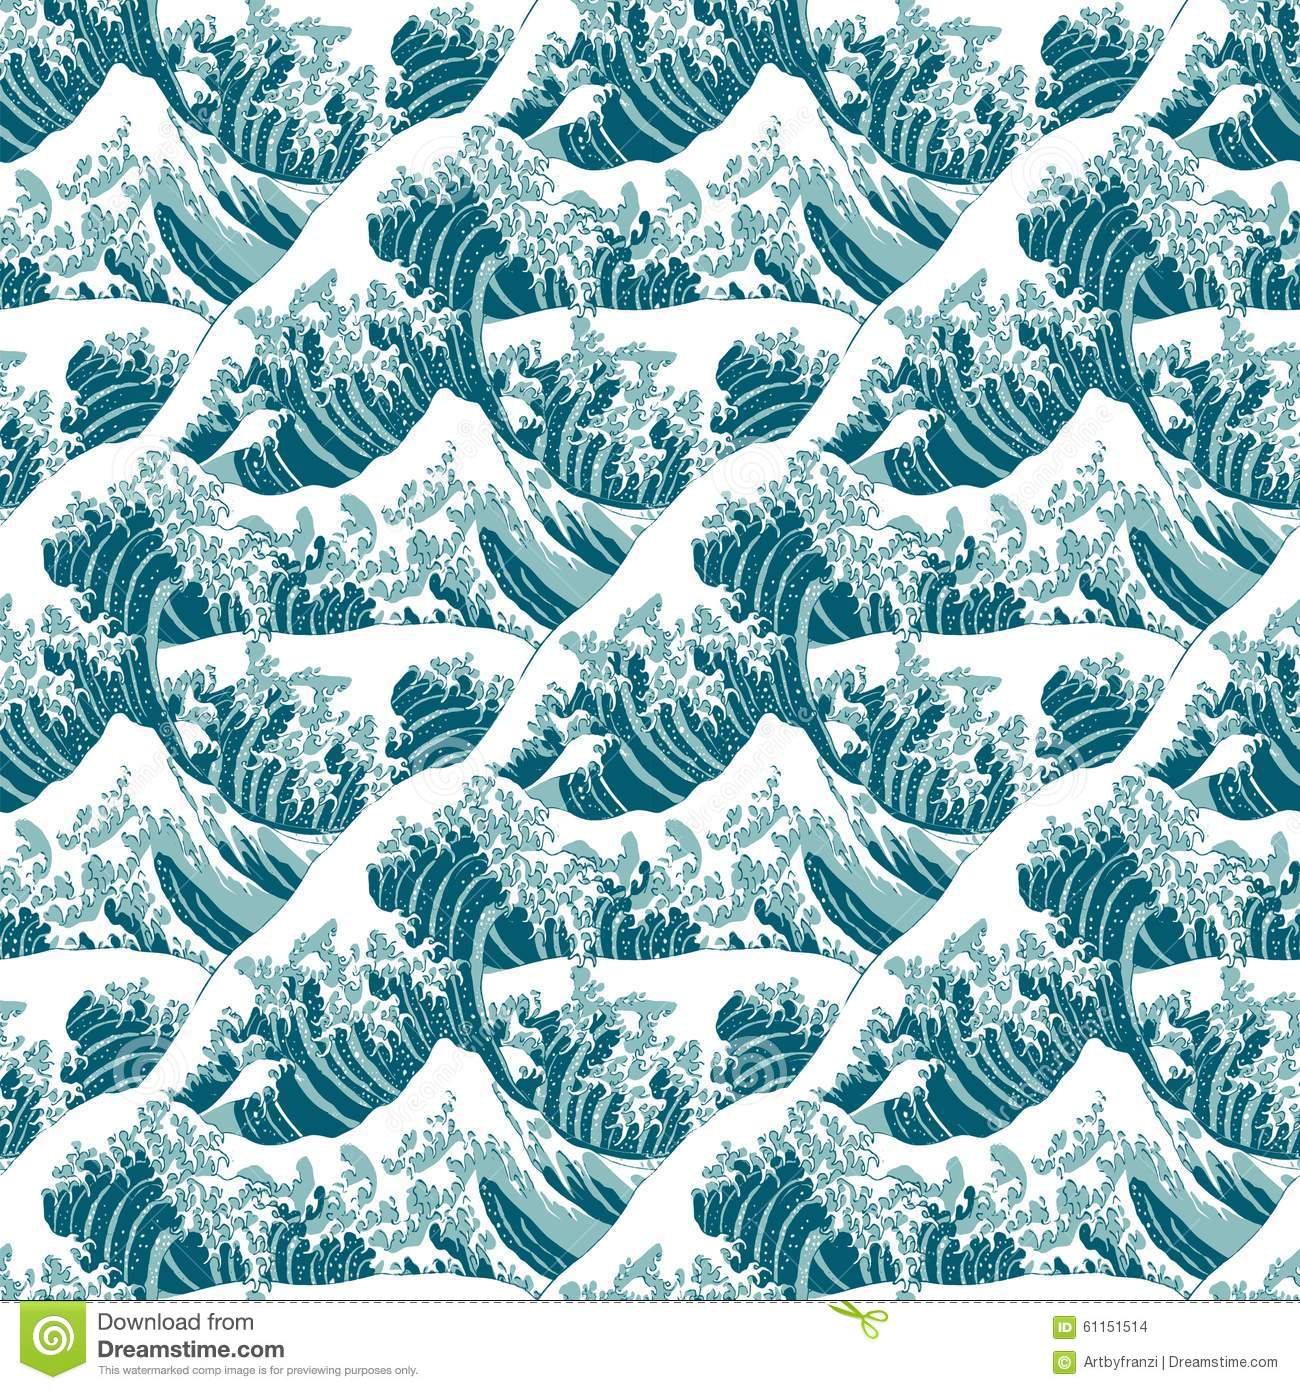 Pattern of the great wave off kanagawa stock vector image 61151514